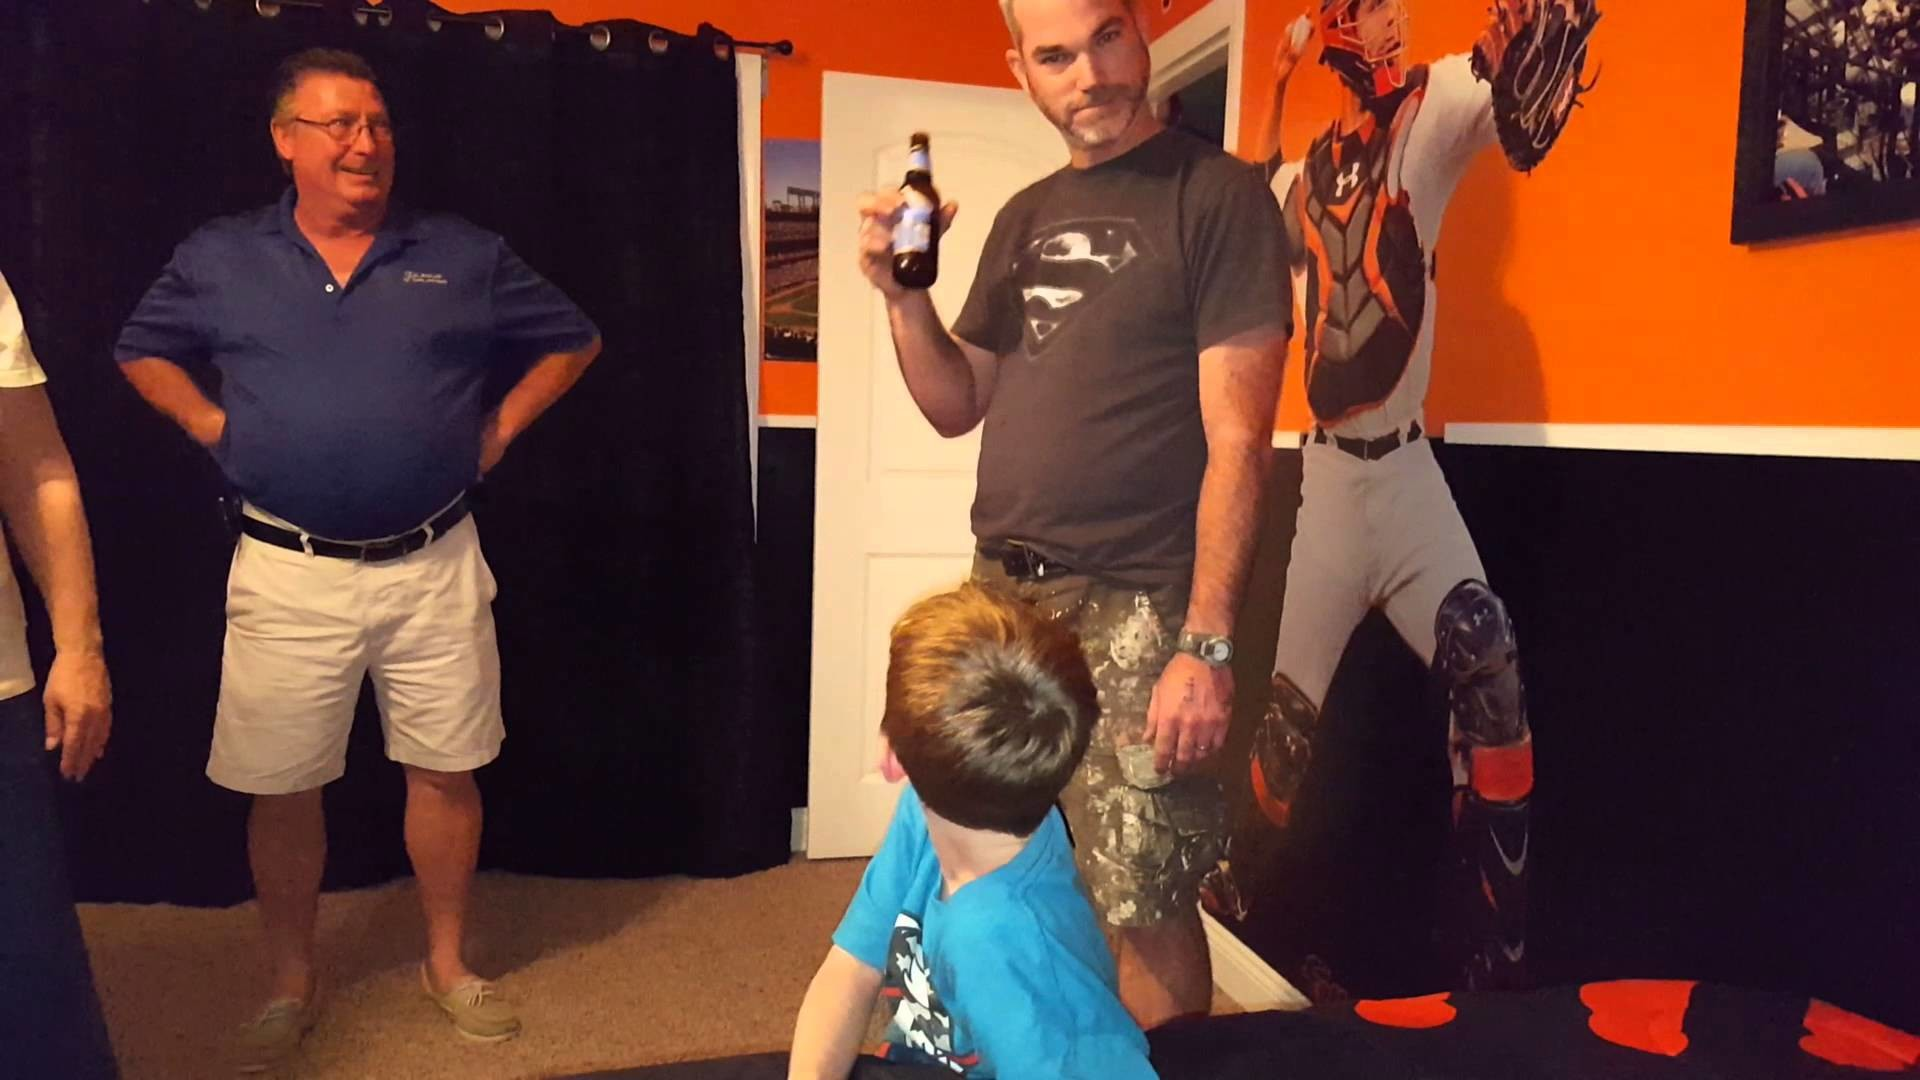 Life size Buster Posey room reveal for 8 year old super fan, a reaction you  won't want to miss!